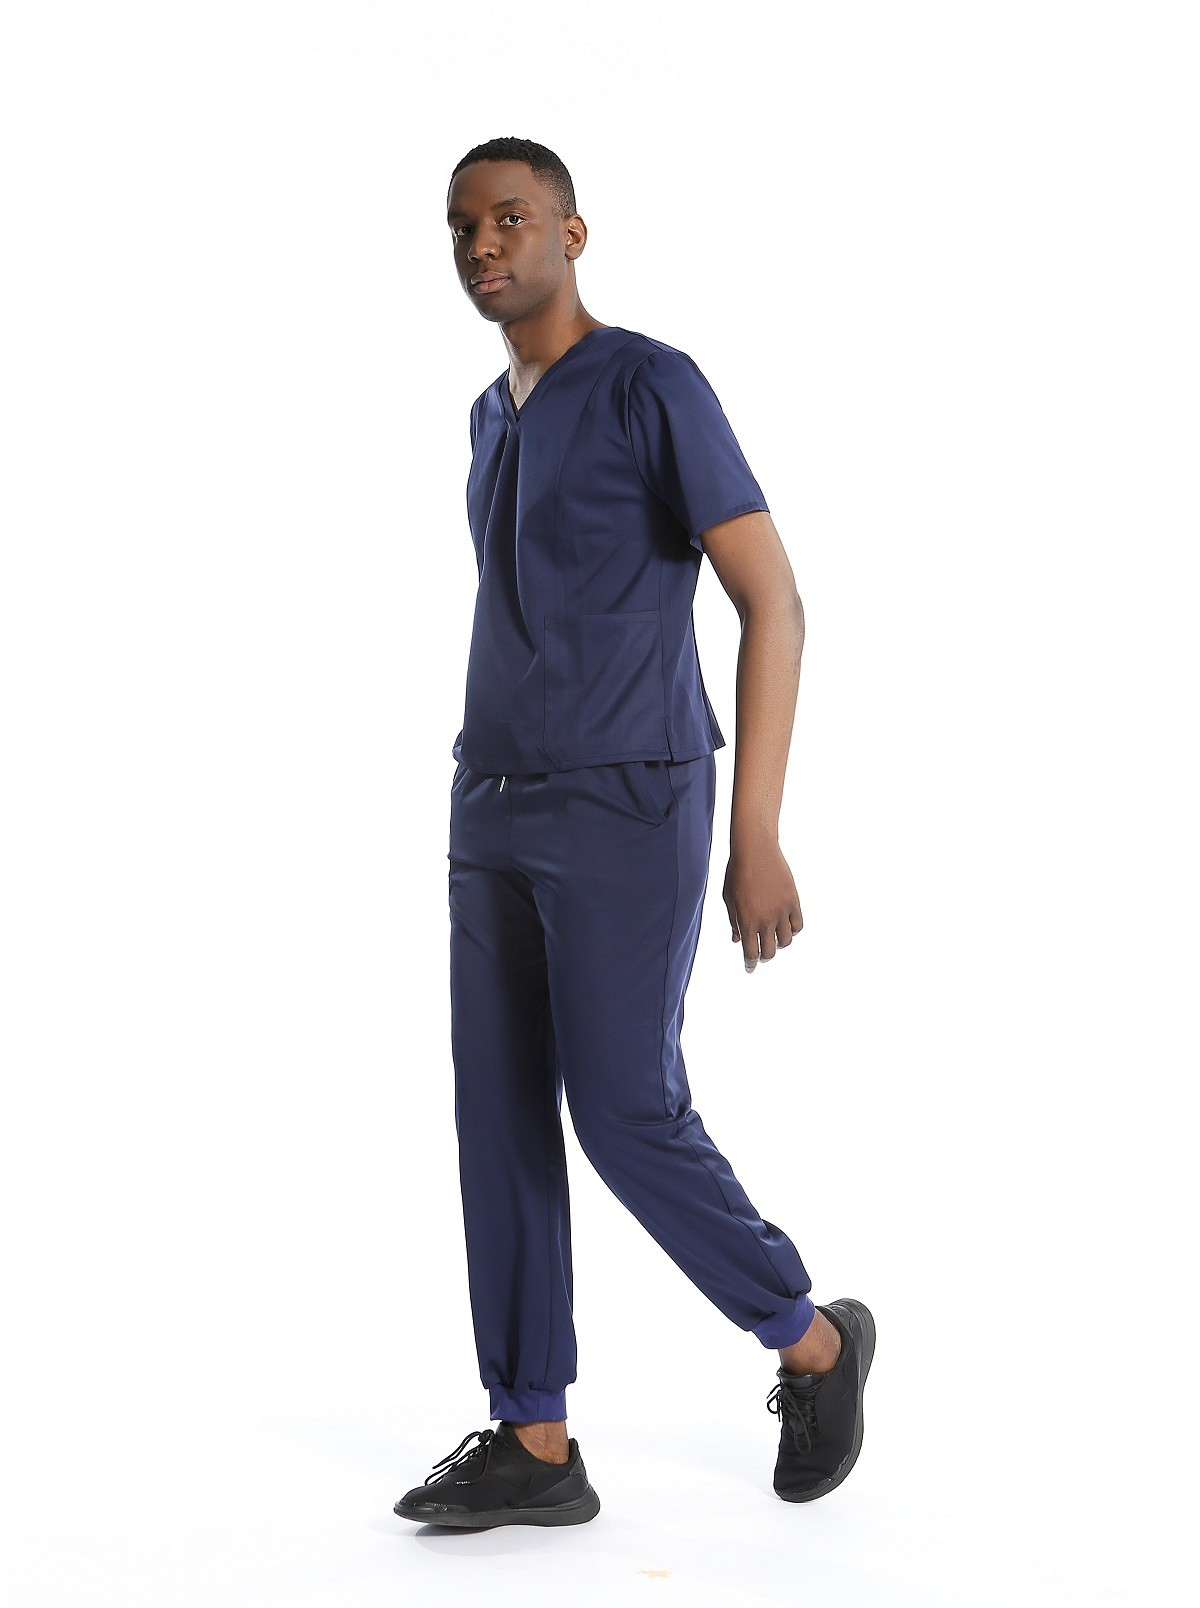 uniforms scrubs and shoes